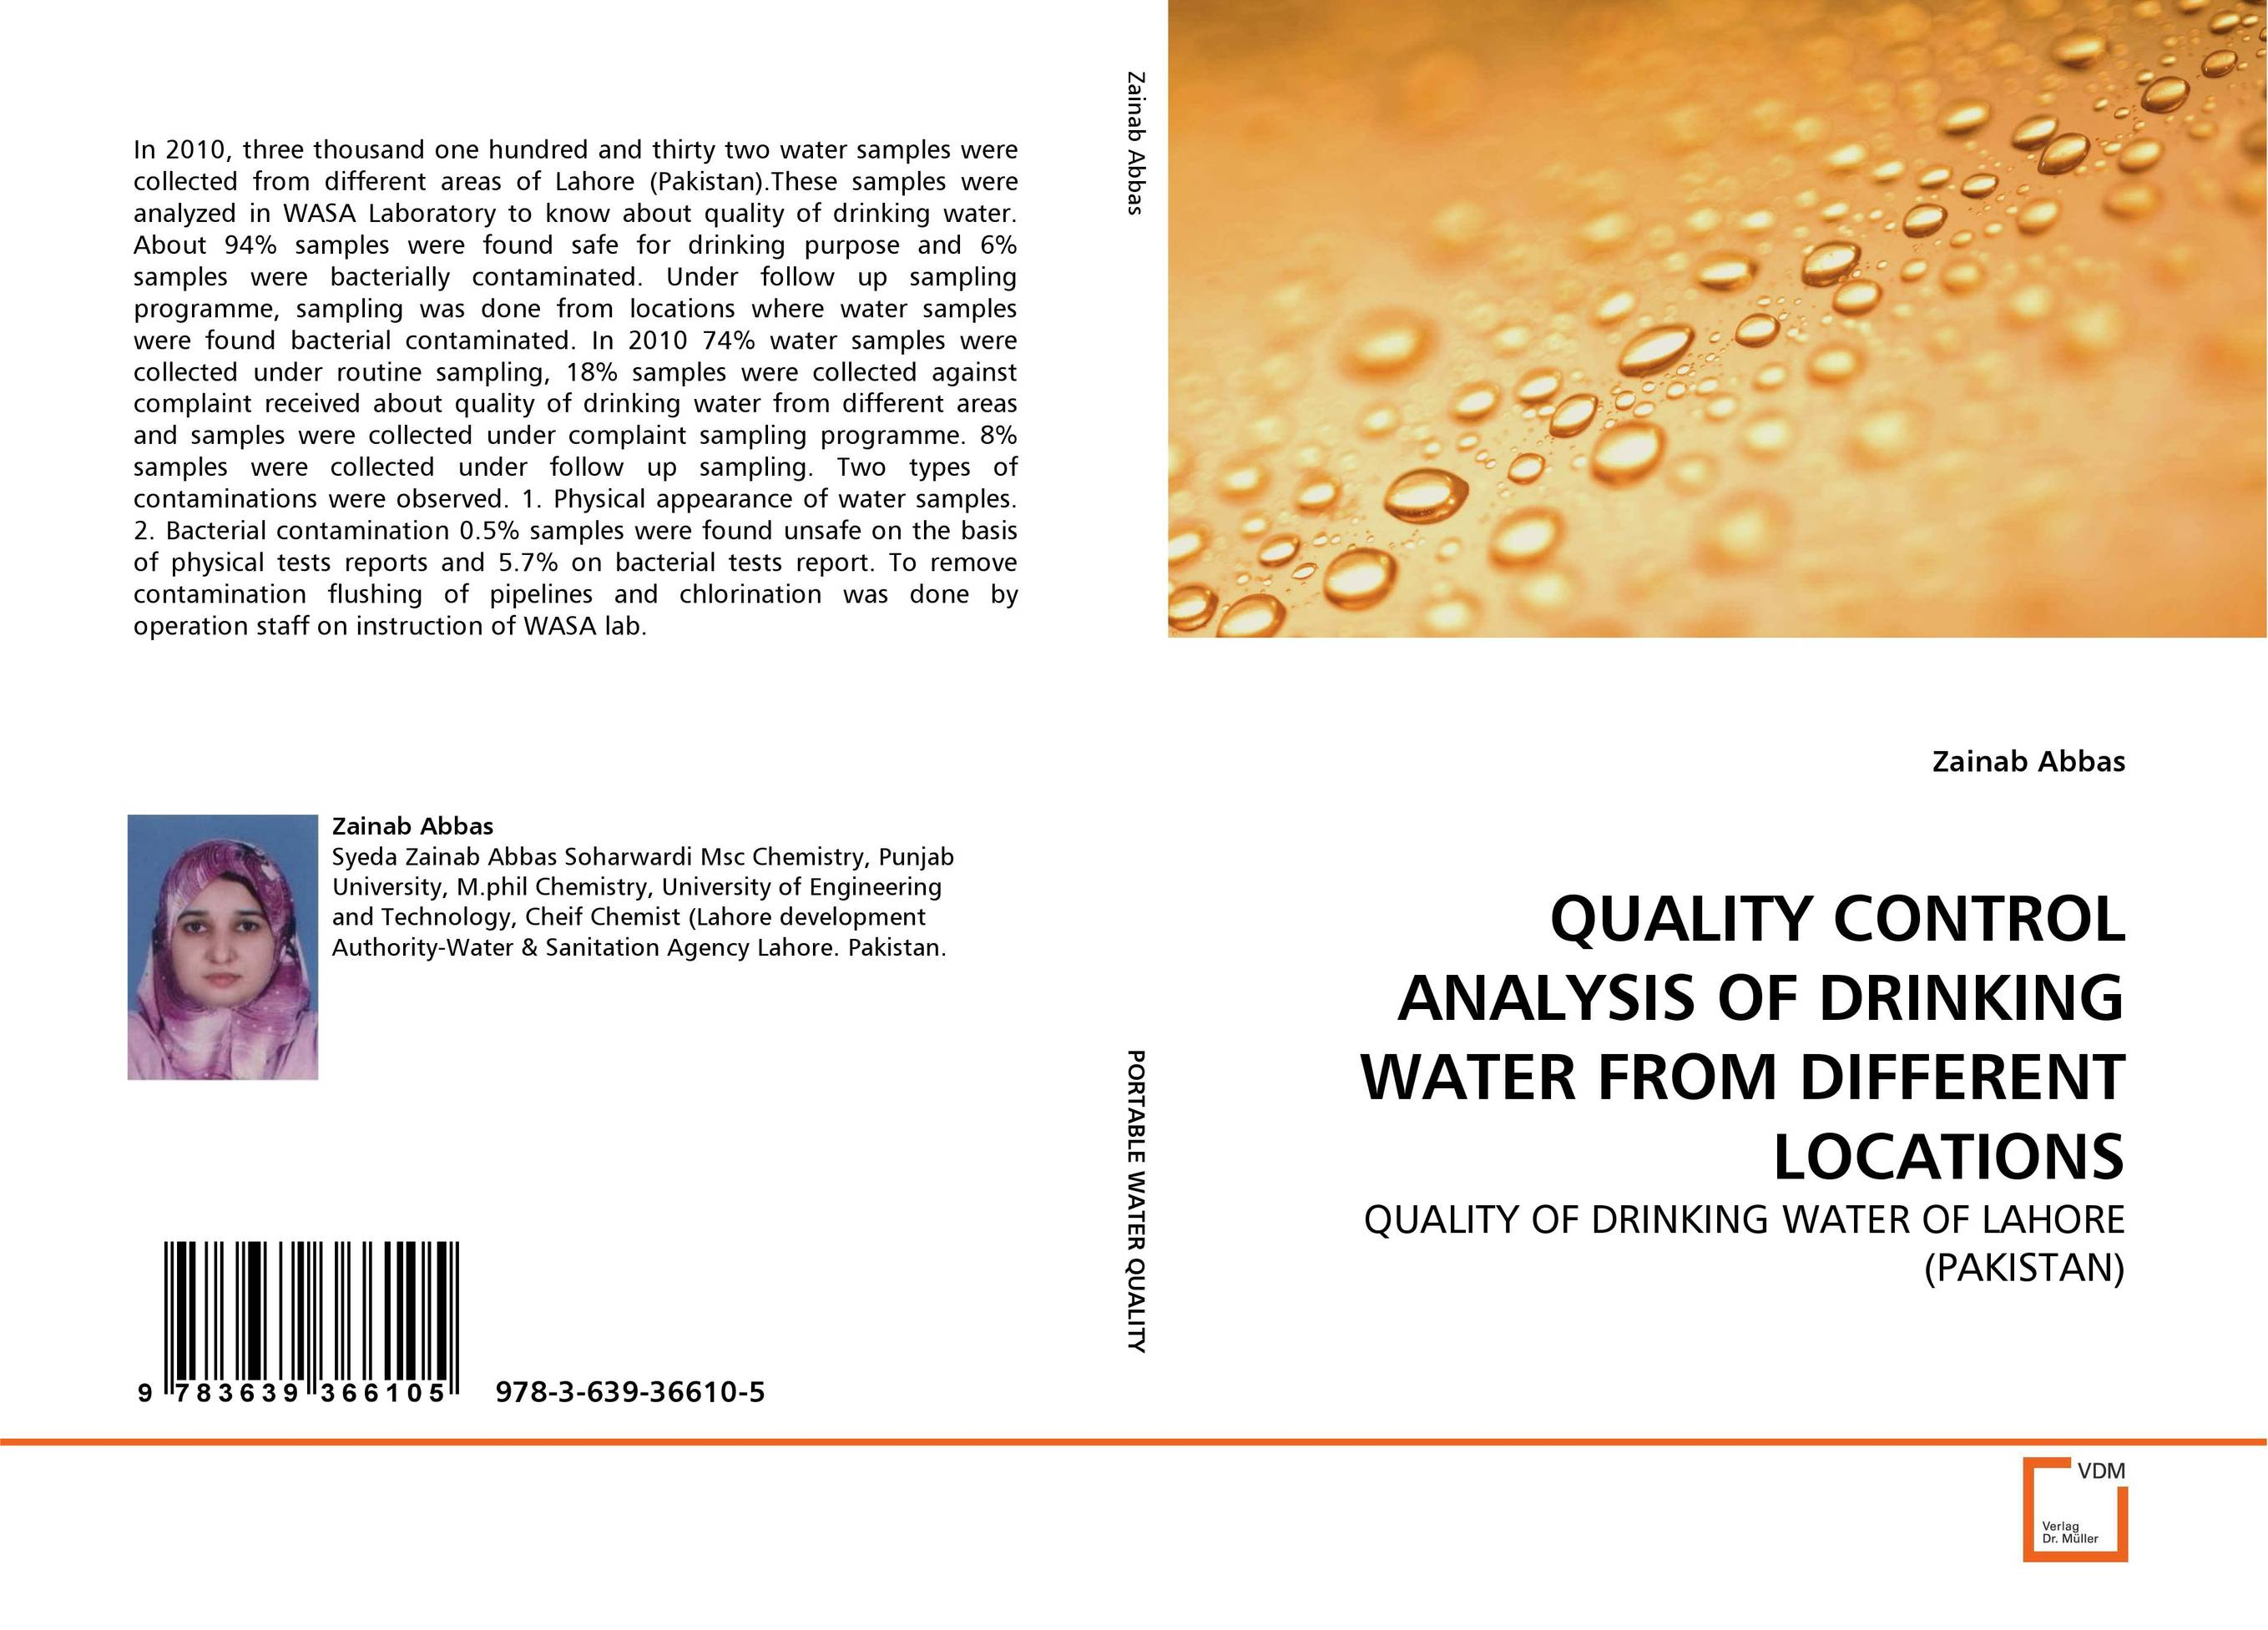 QUALITY CONTROL ANALYSIS OF DRINKING WATER FROM DIFFERENT LOCATIONS found in brooklyn